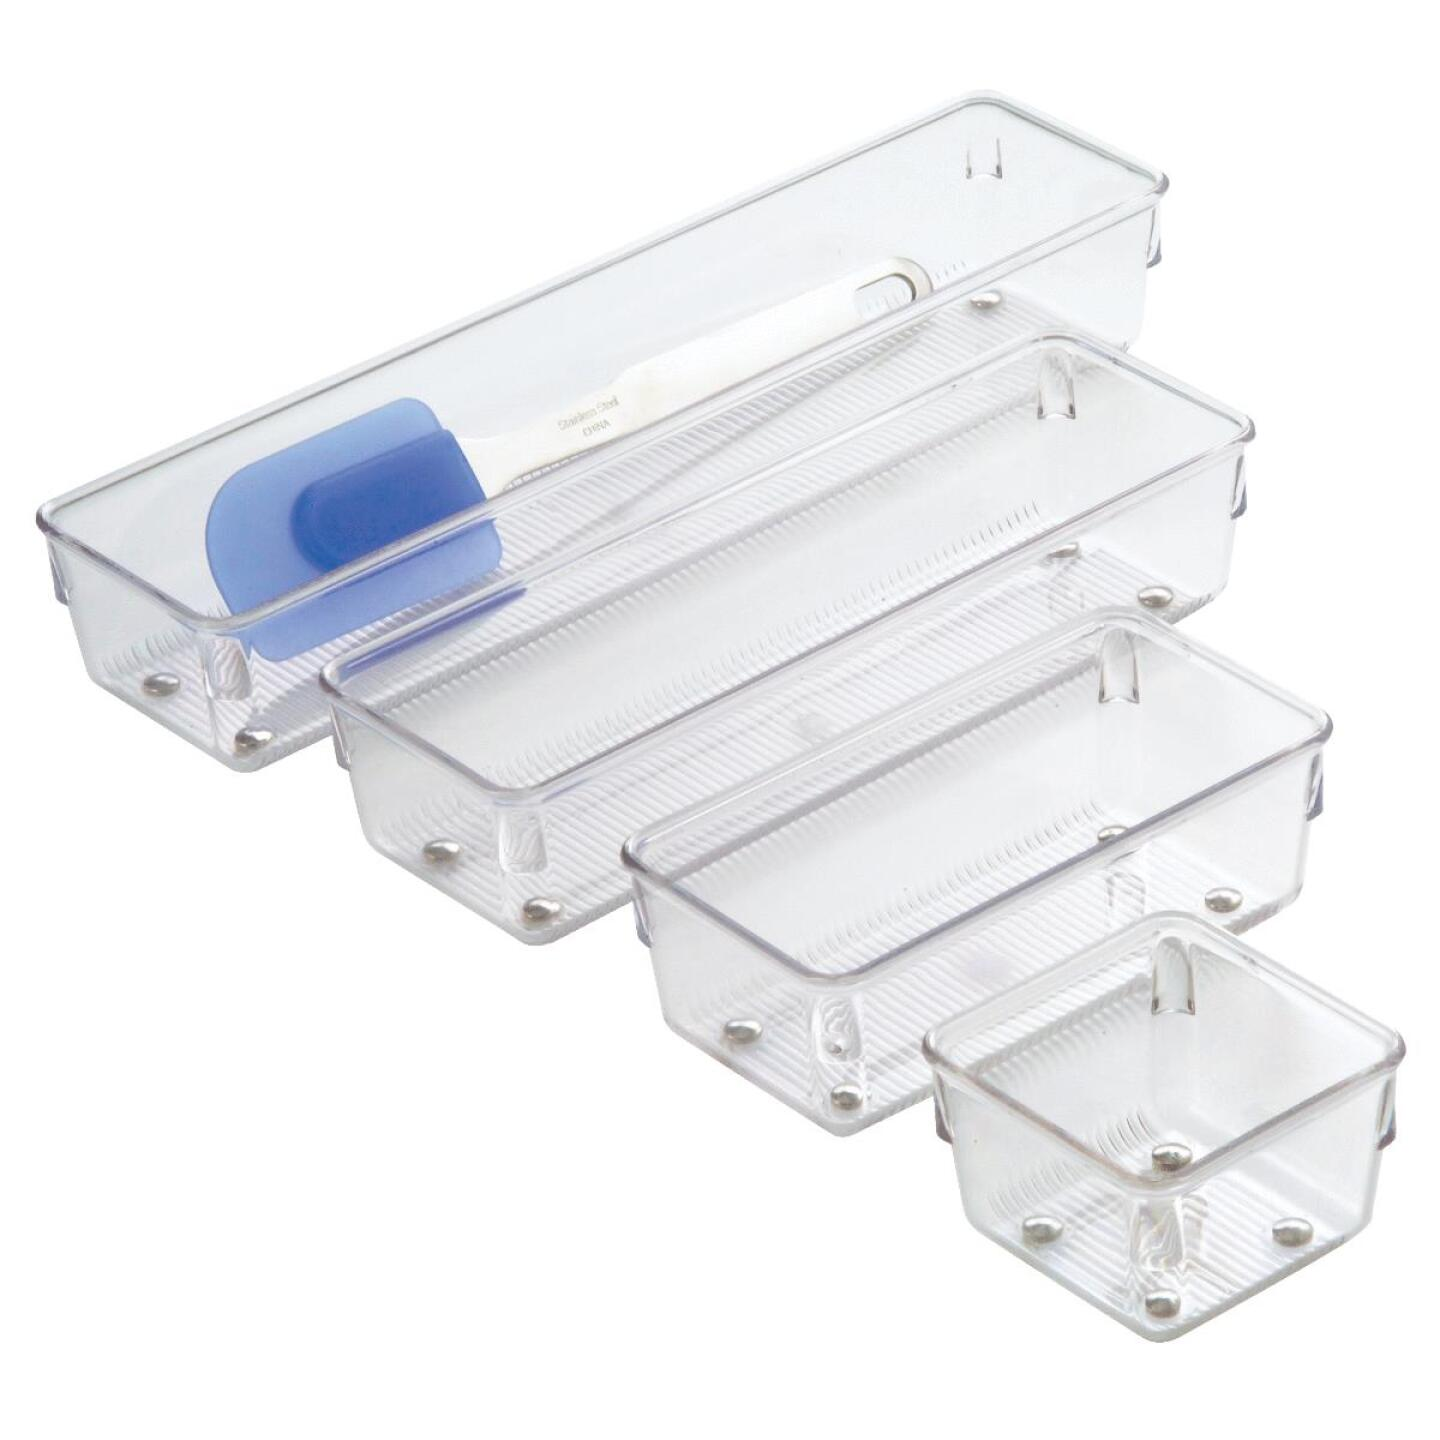 Interdesign Linus 3 In. x 12 In. x 2 In. Clear Drawer Organizer Image 2